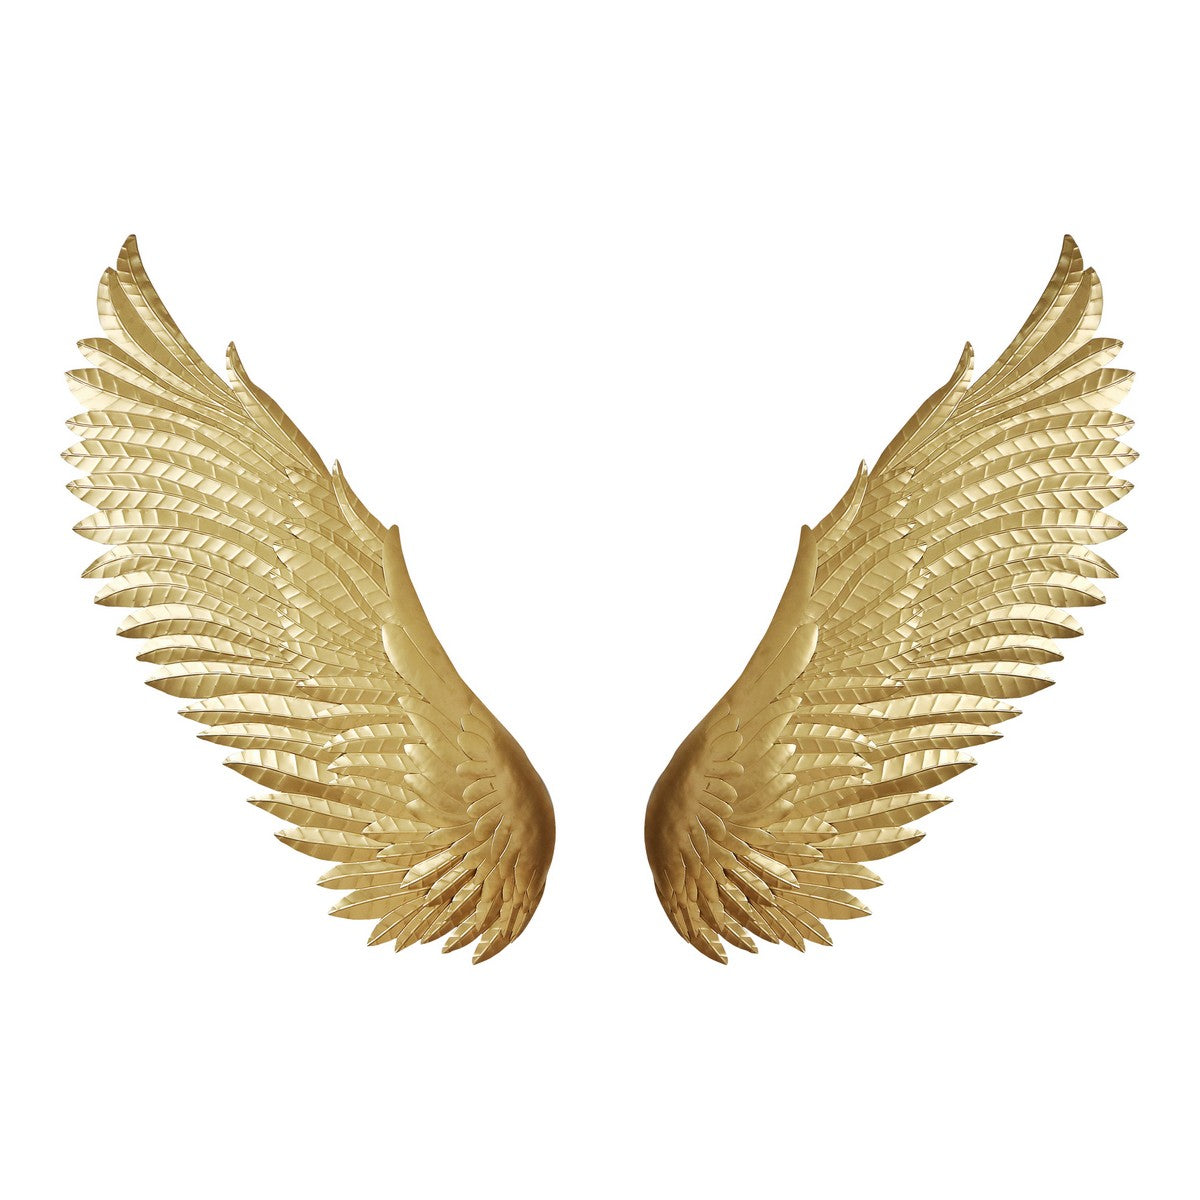 Moe's Home Collection Wings Wall Décor Gold - HZ-1023-32 - Moe's Home Collection - Art - Minimal And Modern - 1